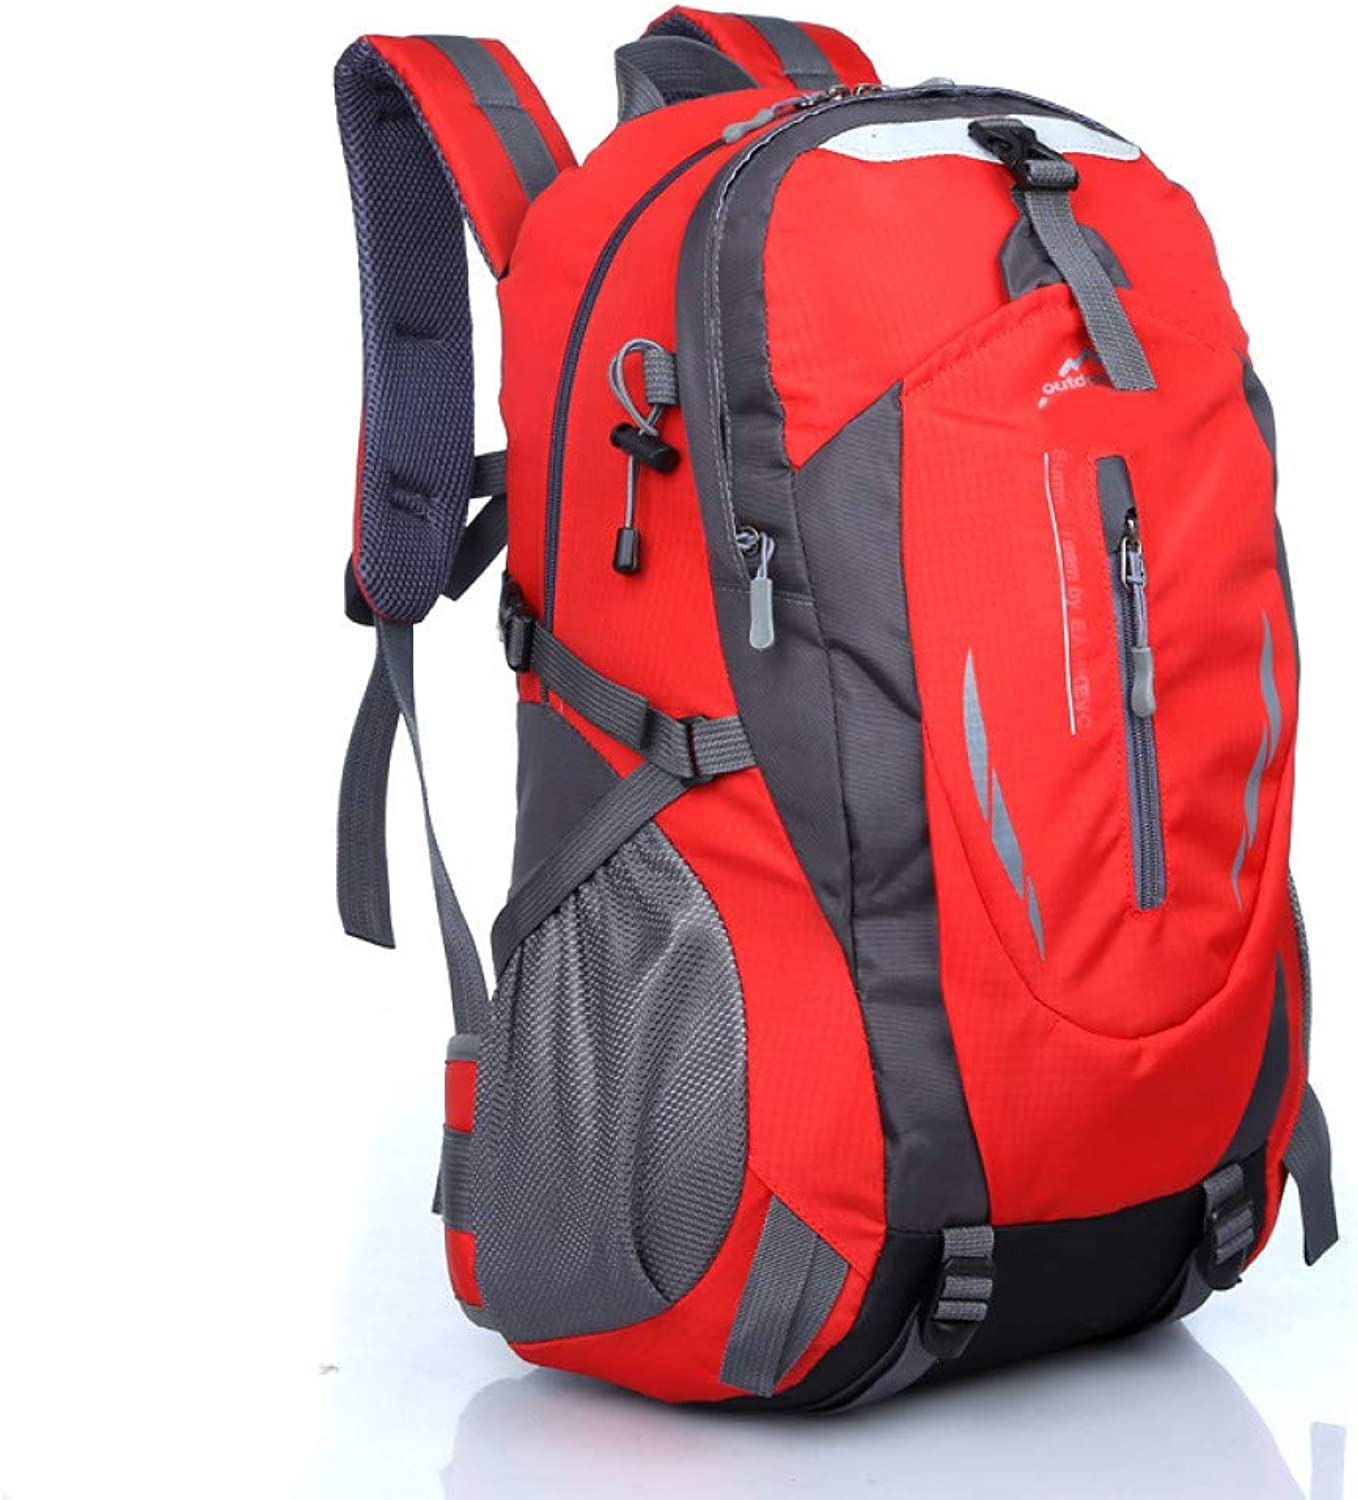 HUYANNABAO Outdoor Travel Backpack Mountaineering Bag Men Women Knapsack Sport Bags Backpack Camping Hiking Rucksacks